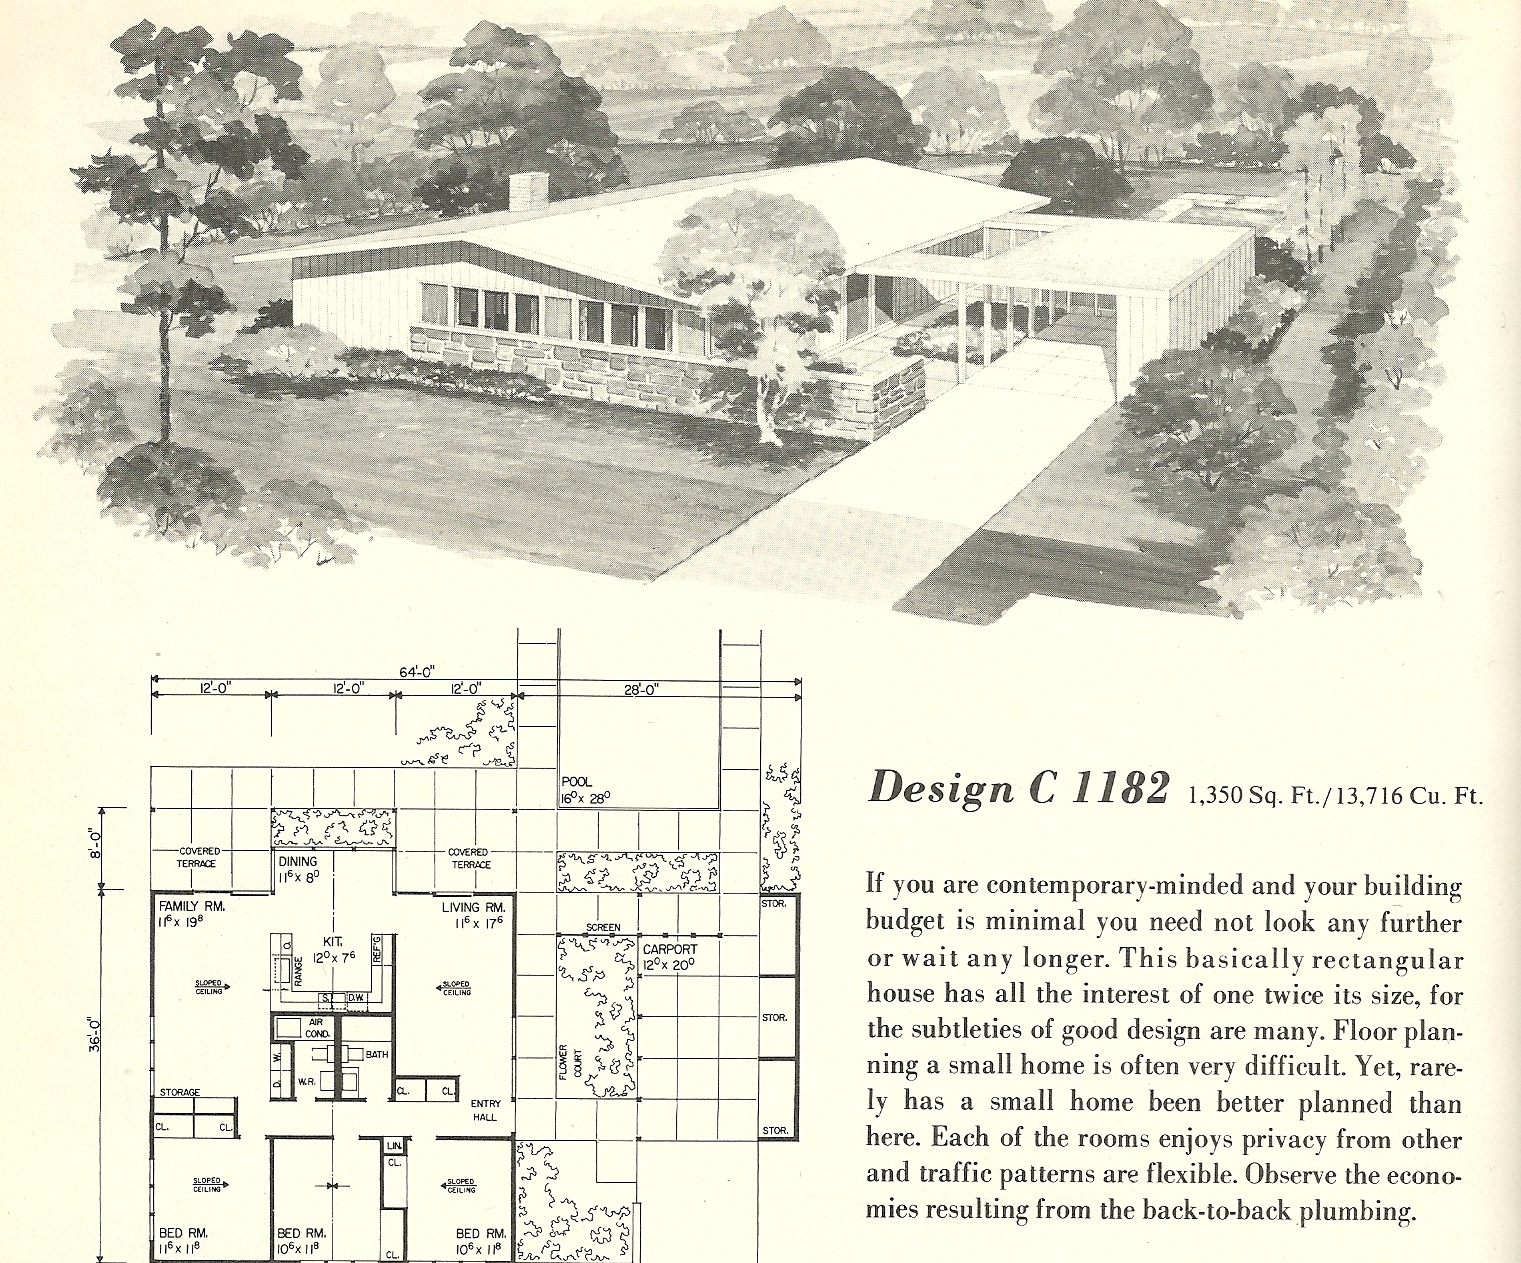 Vintage house plans 1182 antique alter ego for Mid century modern plans